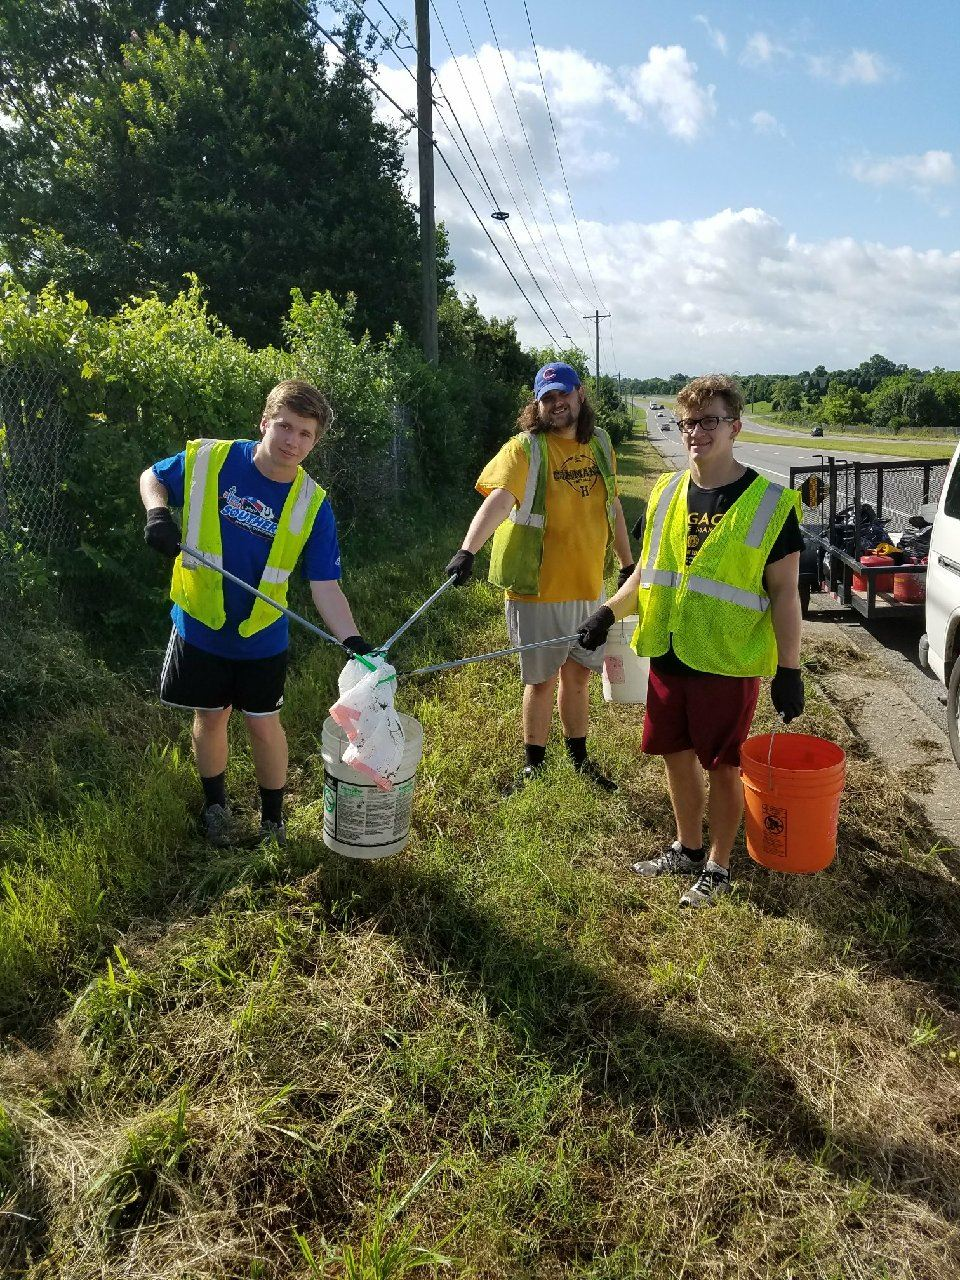 Student Volunteers in Safety Vests on Litter Detail